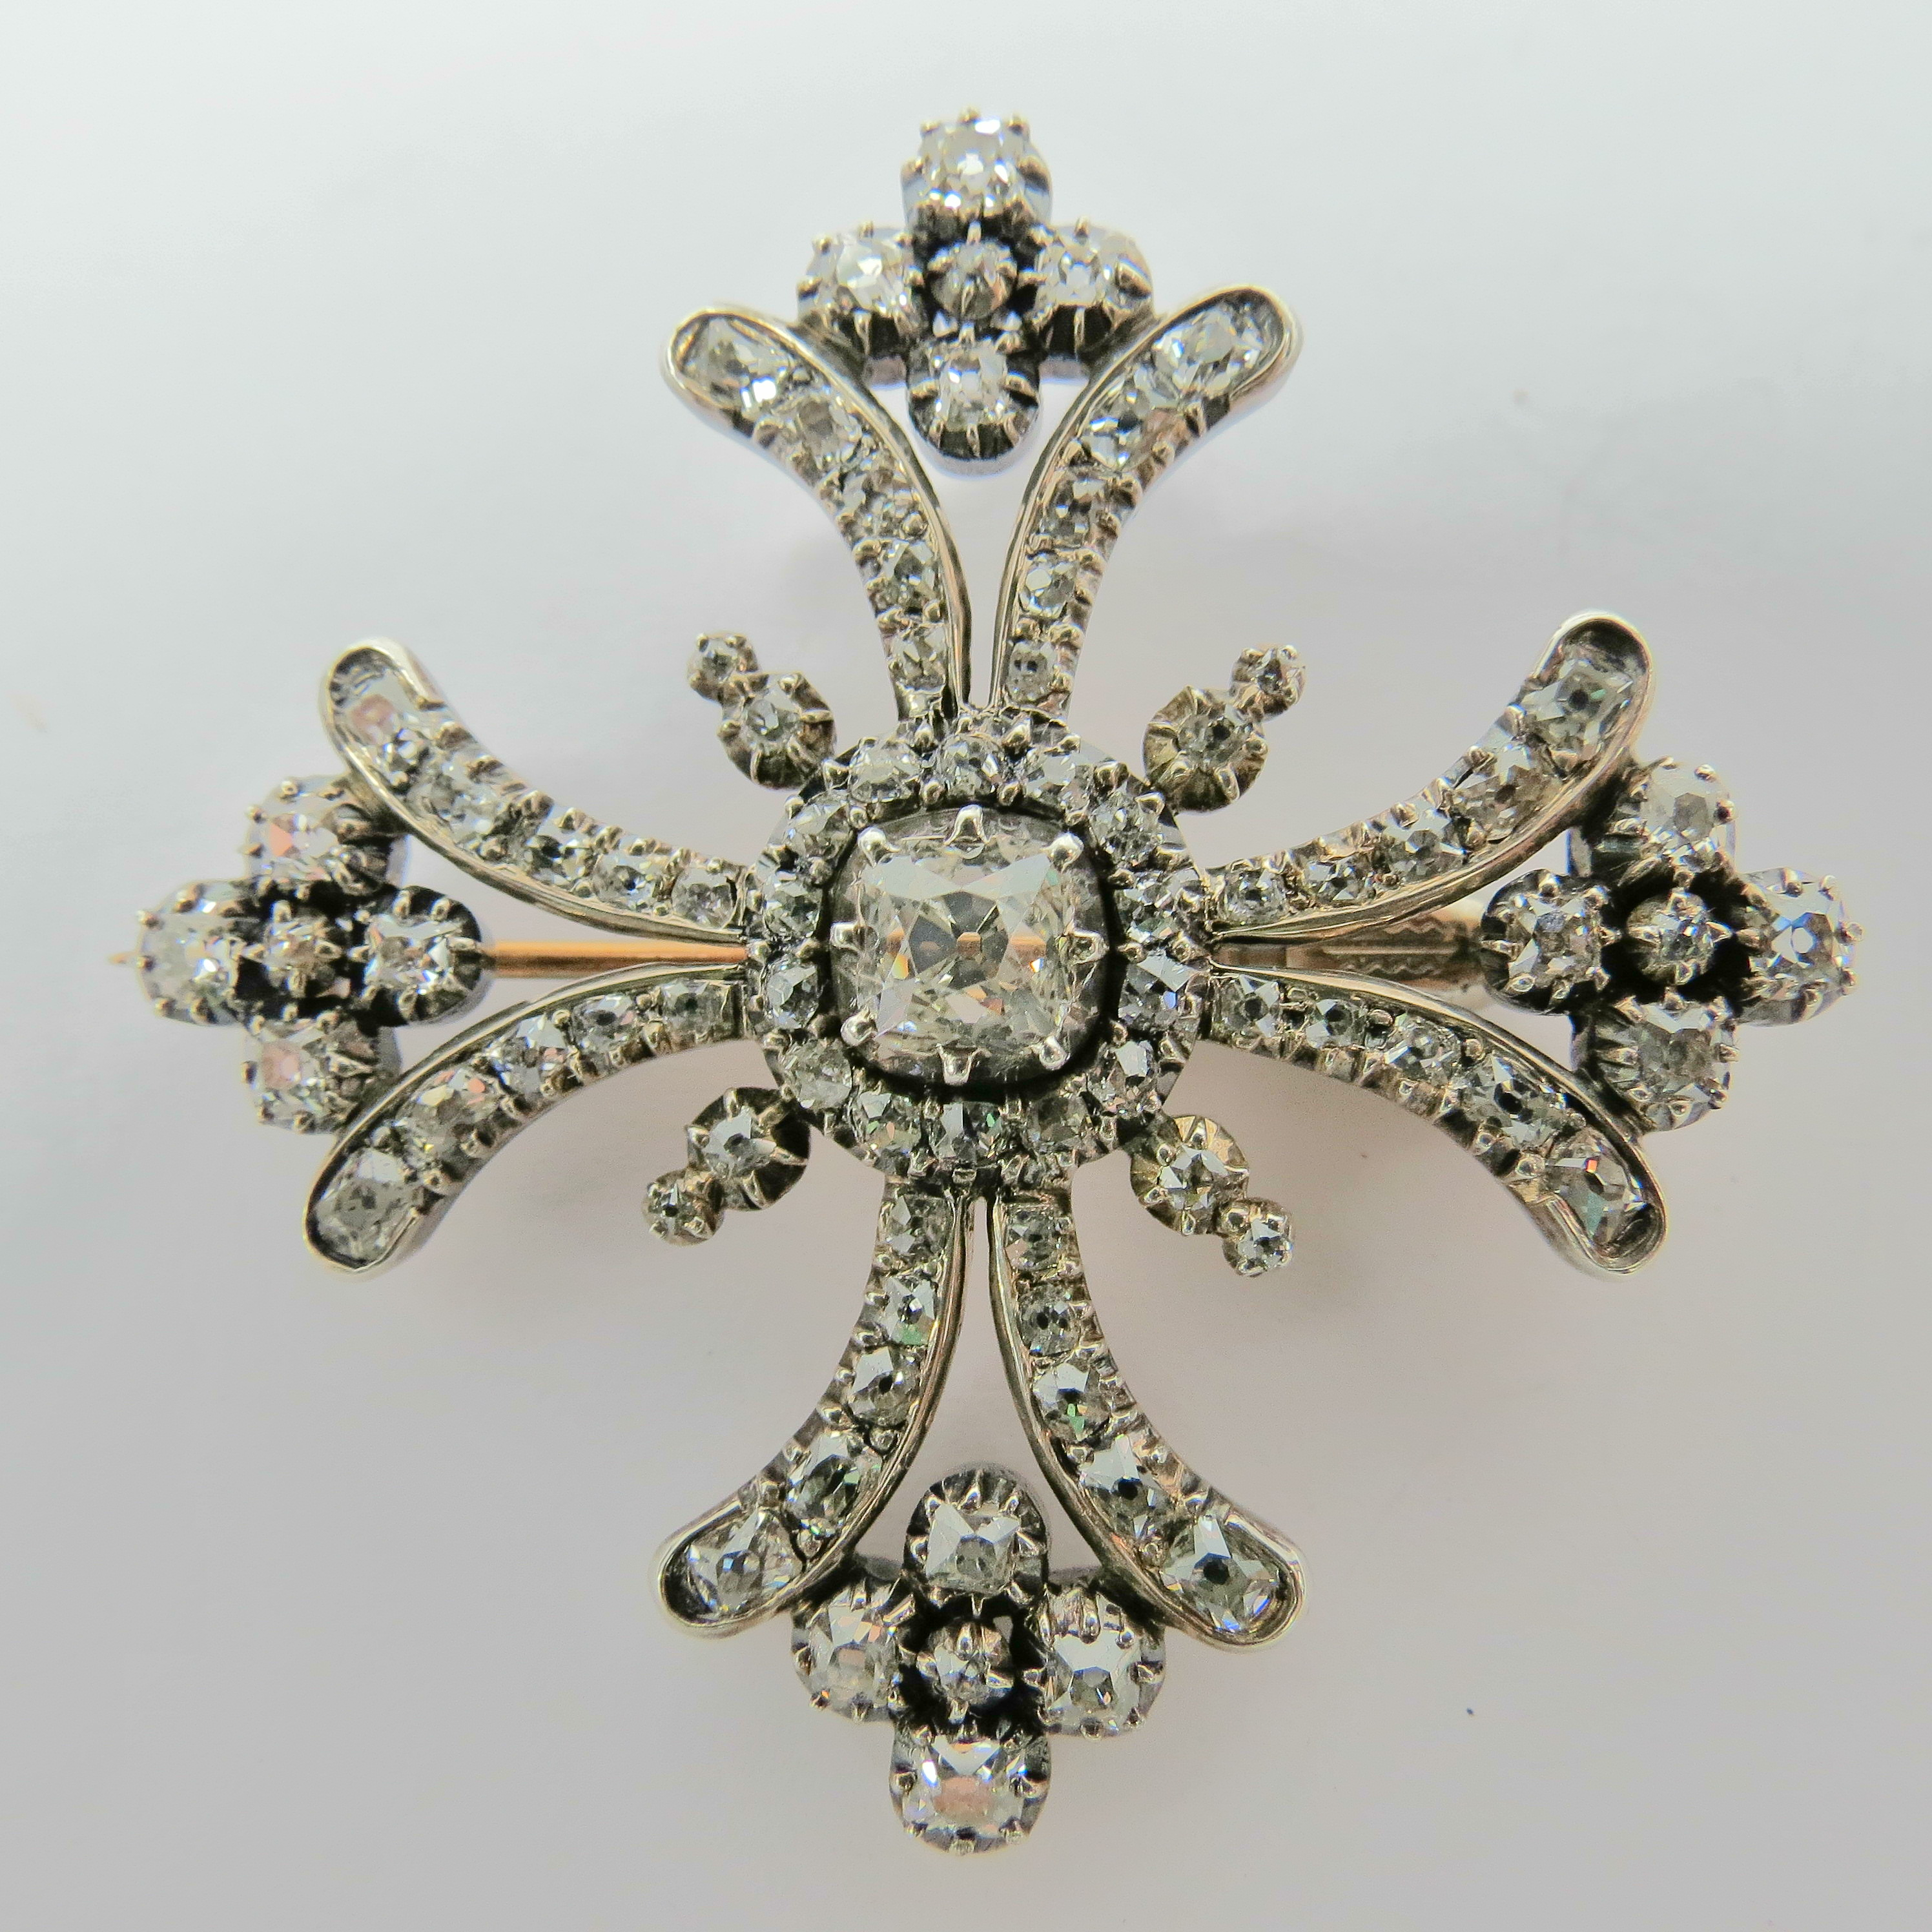 Lot 526 - A diamond set stylised Huguenot cross with central cushion shaped hobnail diamond, weight approx 0.